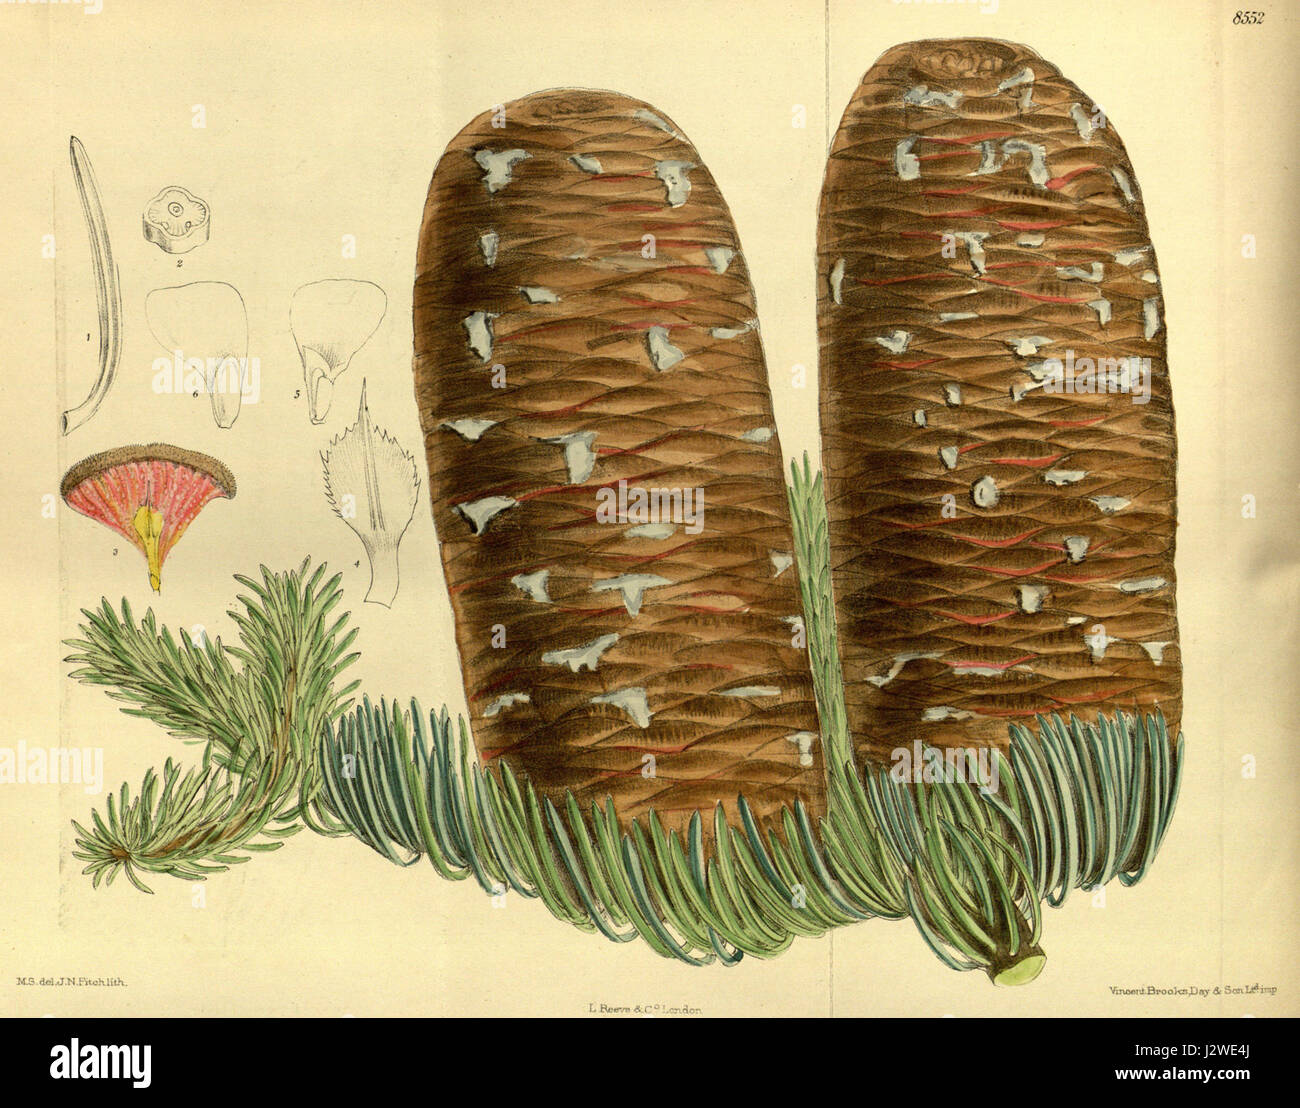 Abies magnifica 140-8552 - Stock Image